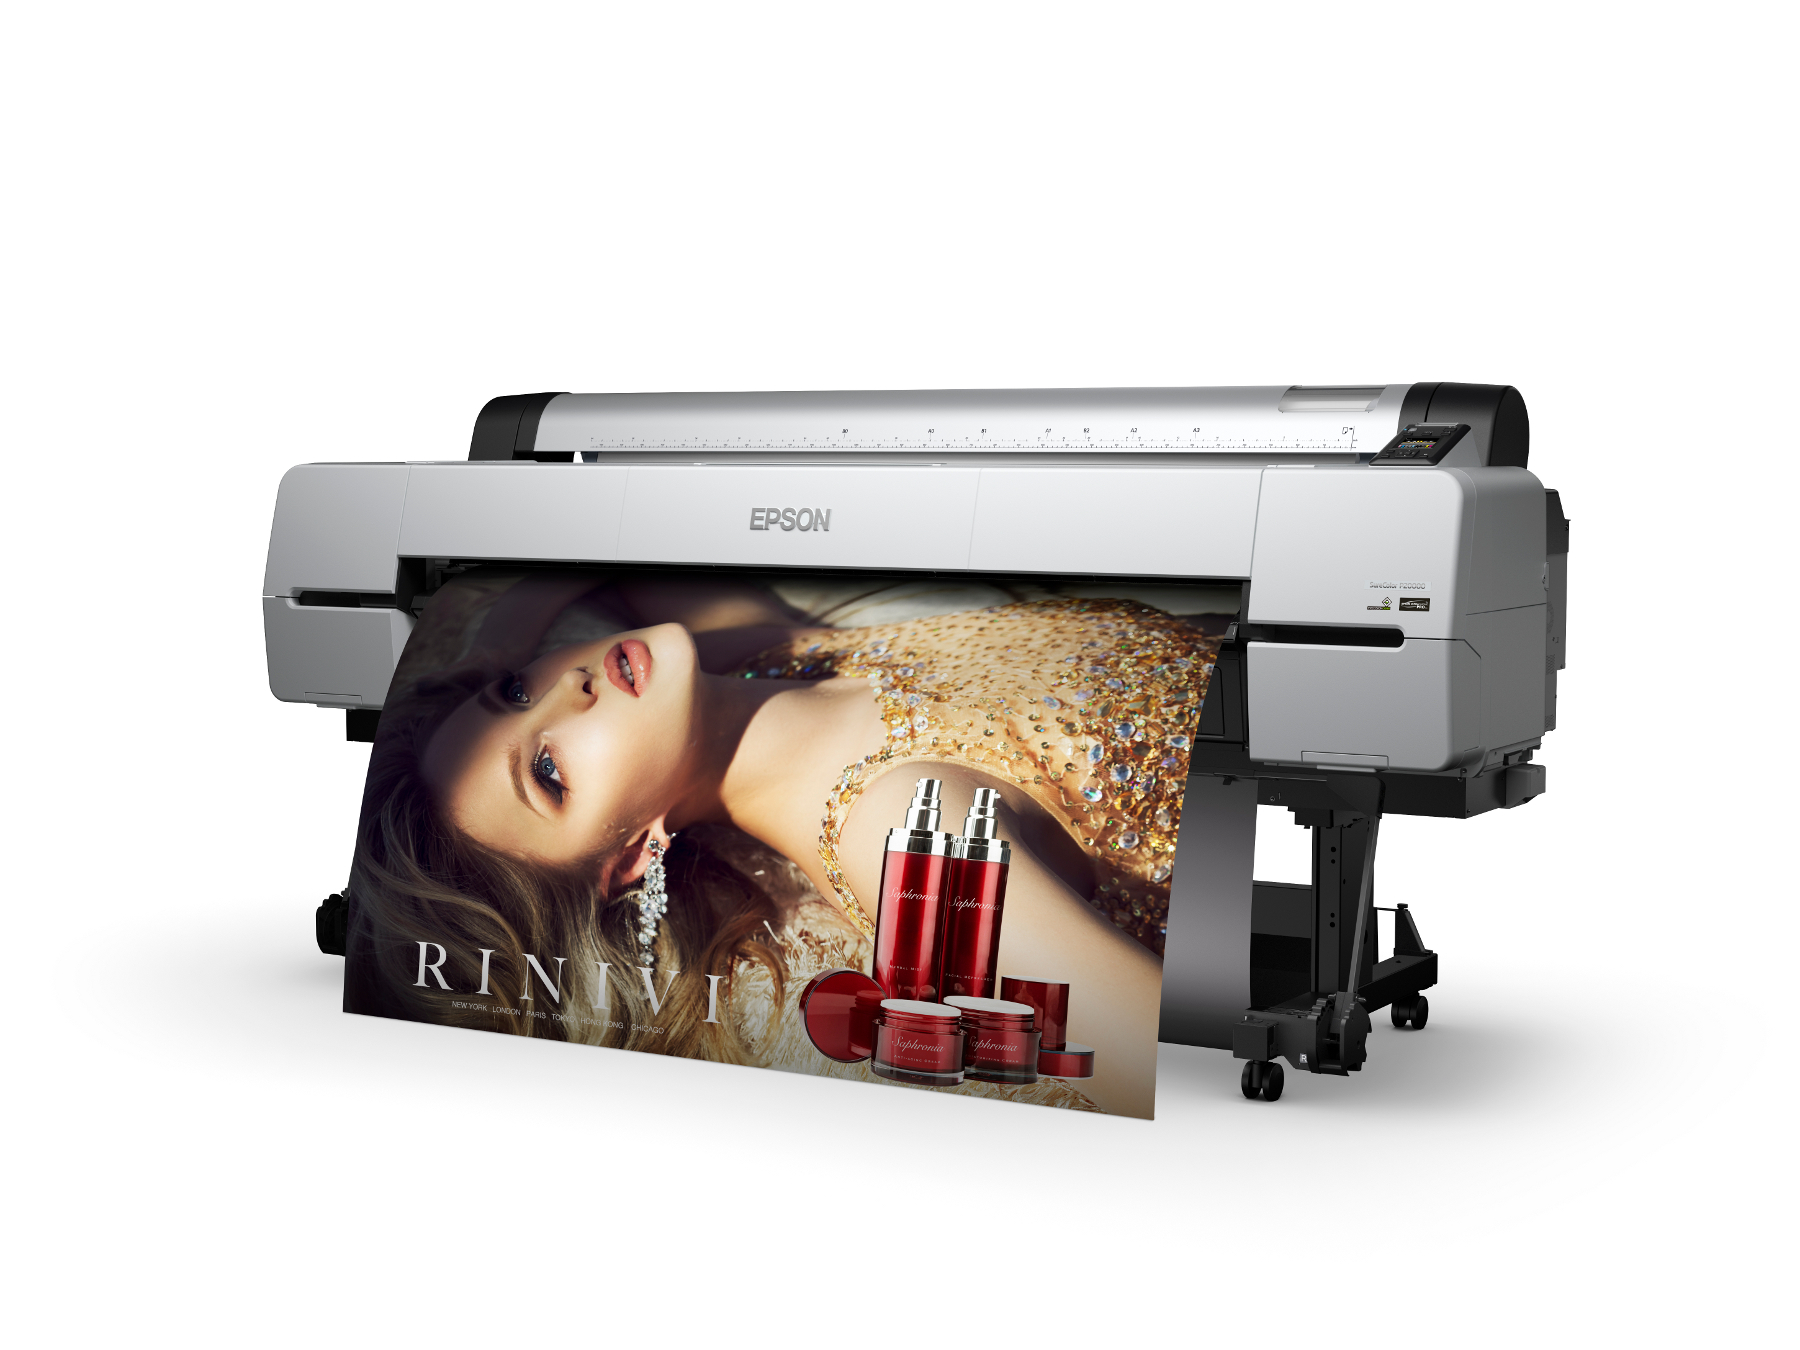 Epson UK launches new wide-format printer – The Recycler